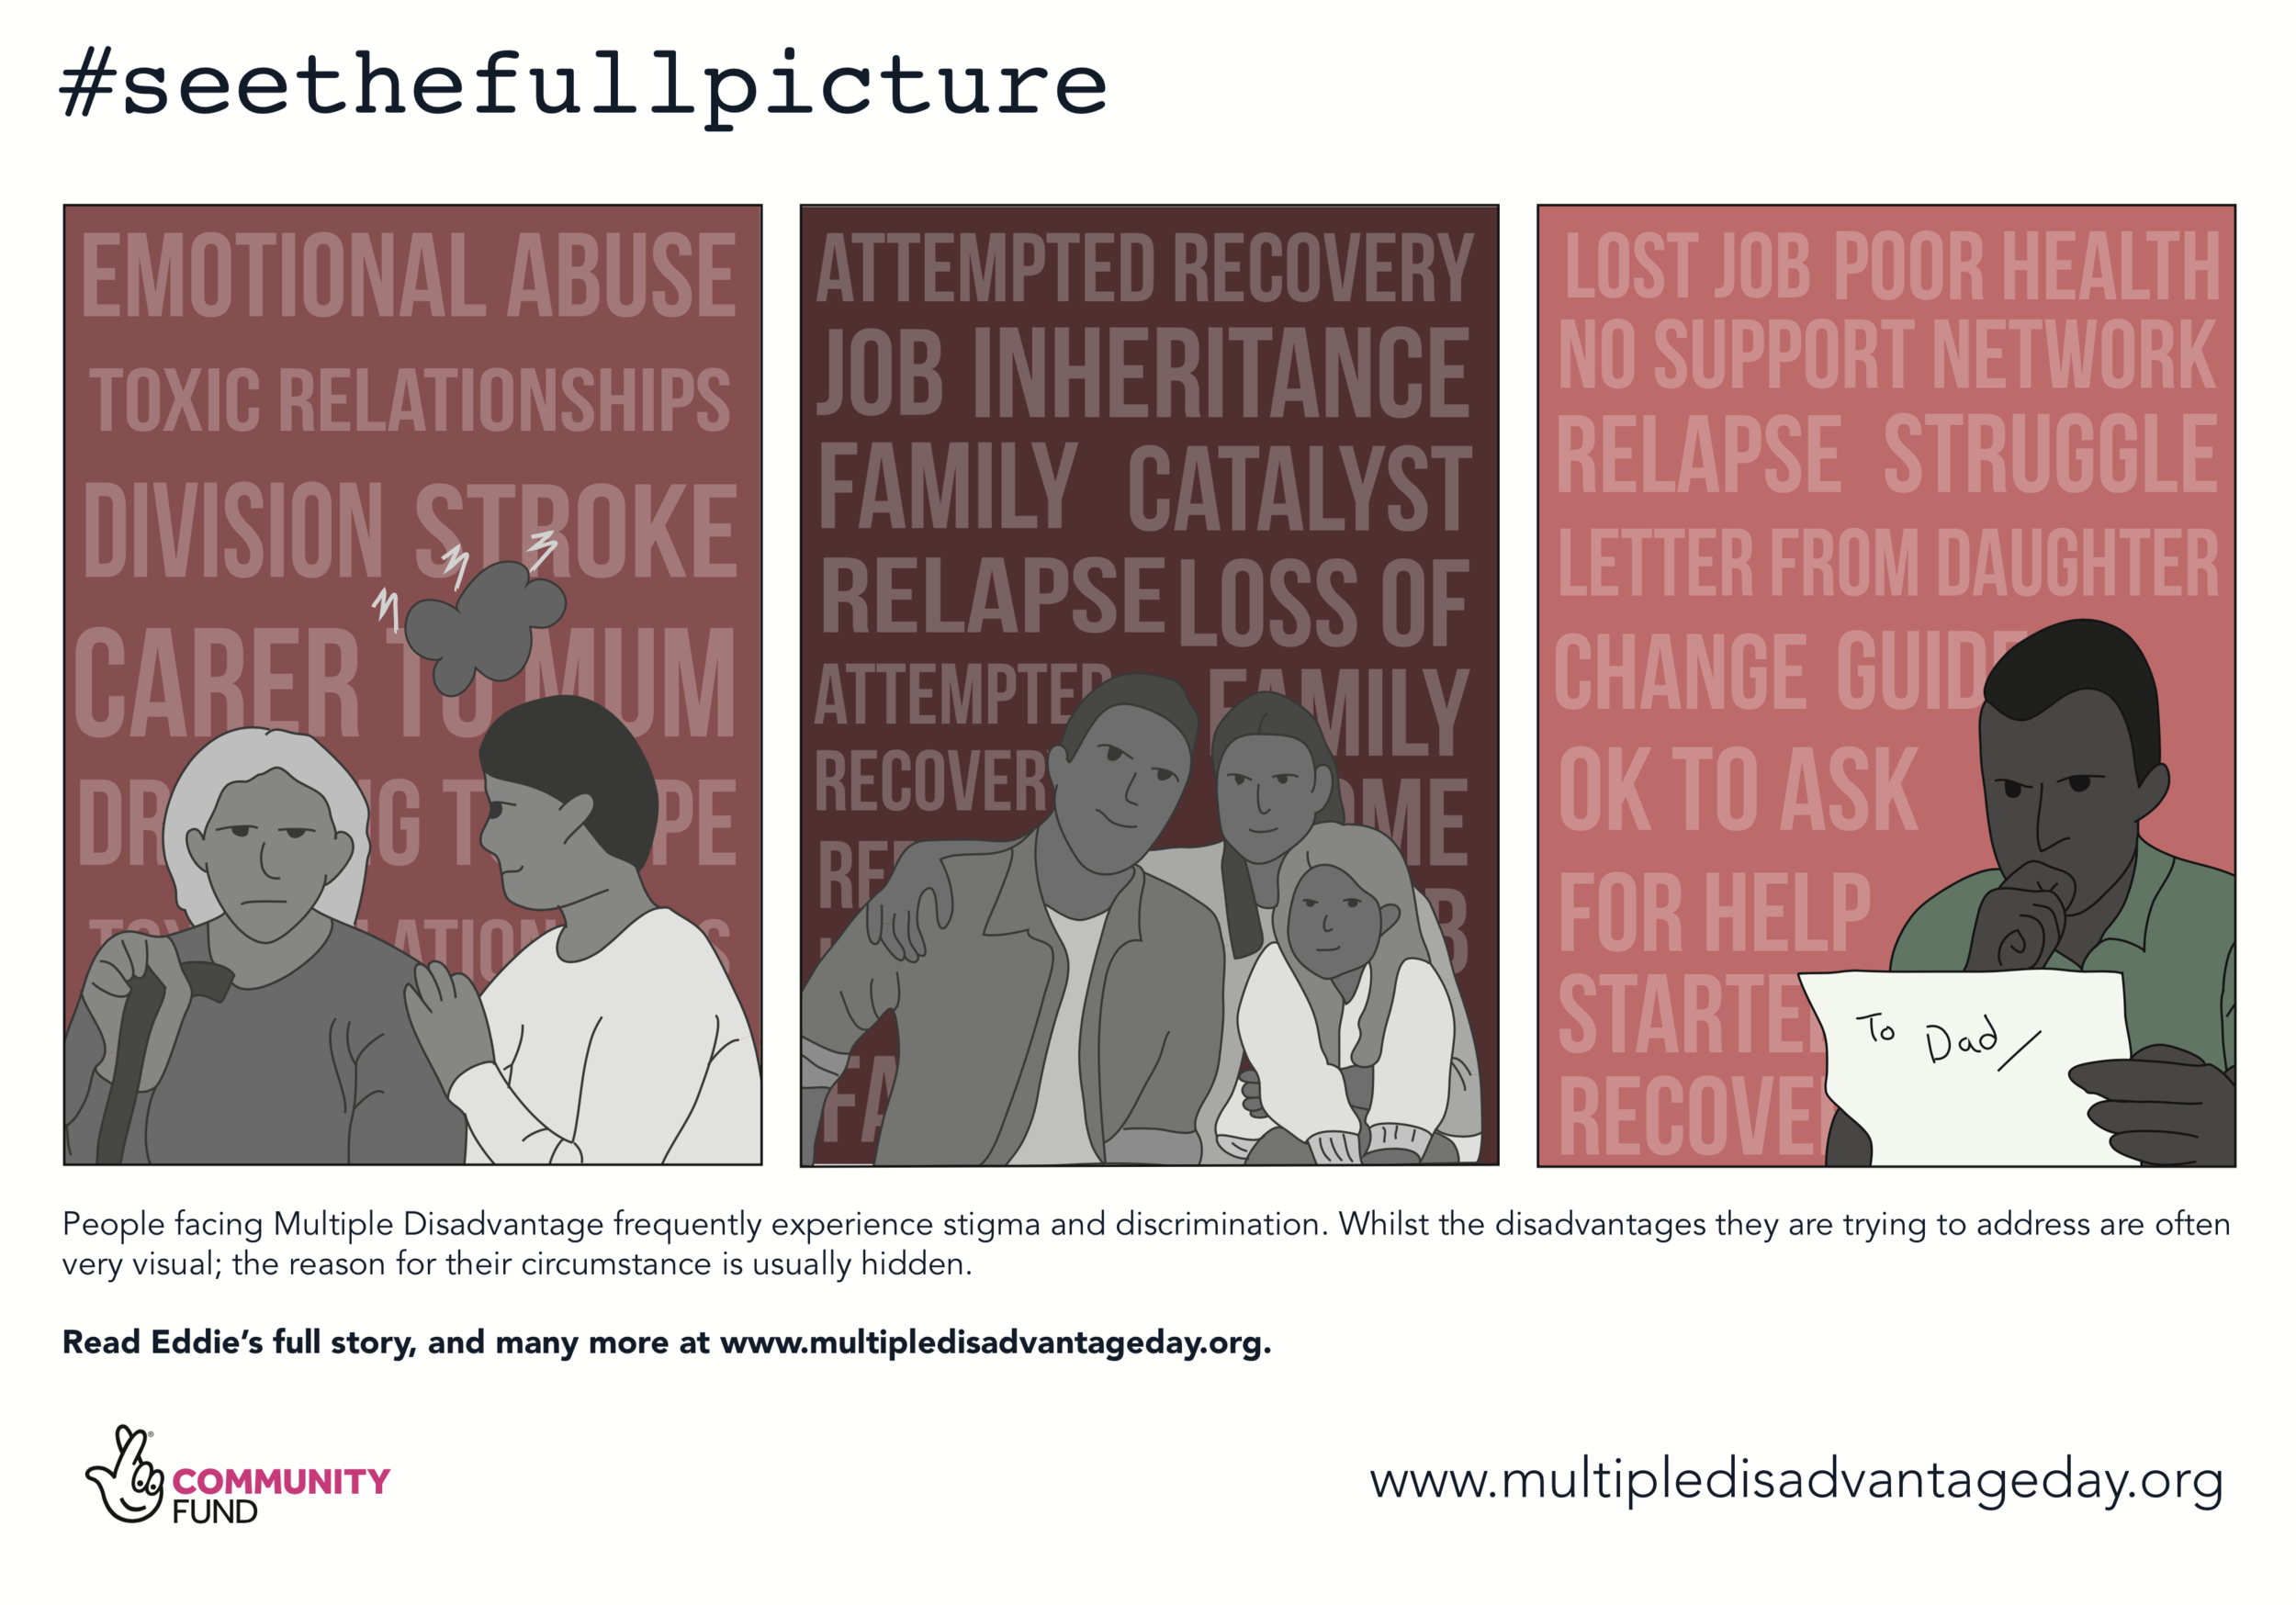 Multiple Disadvantage Day - #seethefullpicture - Campaign Graphics - True Stories - Eddie's Story